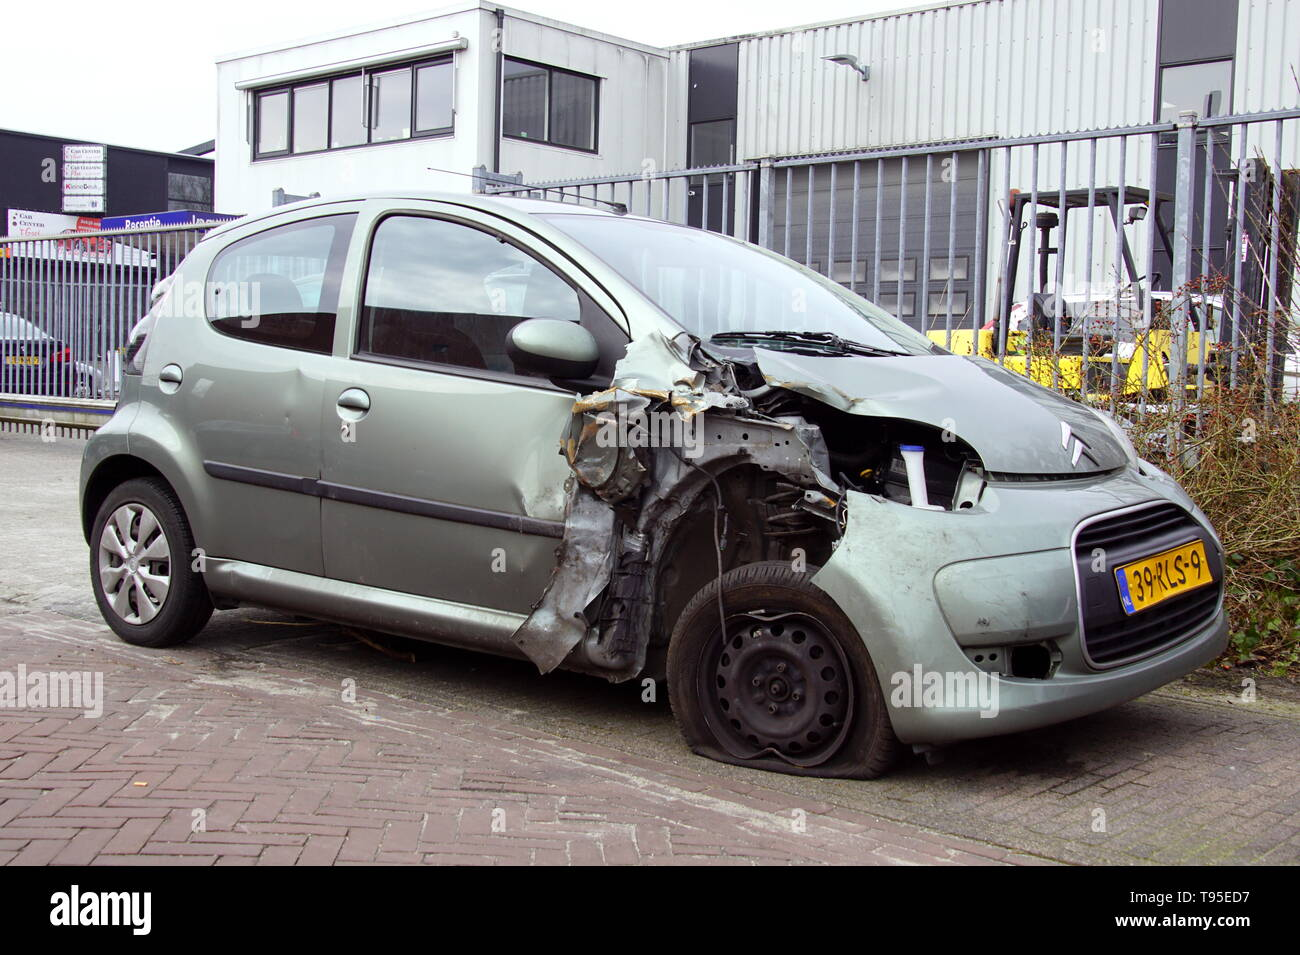 Naarden, the Netherlands - March 23, 2018: Citroën C1 with accident damage parked by the side of the road. Nobody in the vehicle. - Stock Image